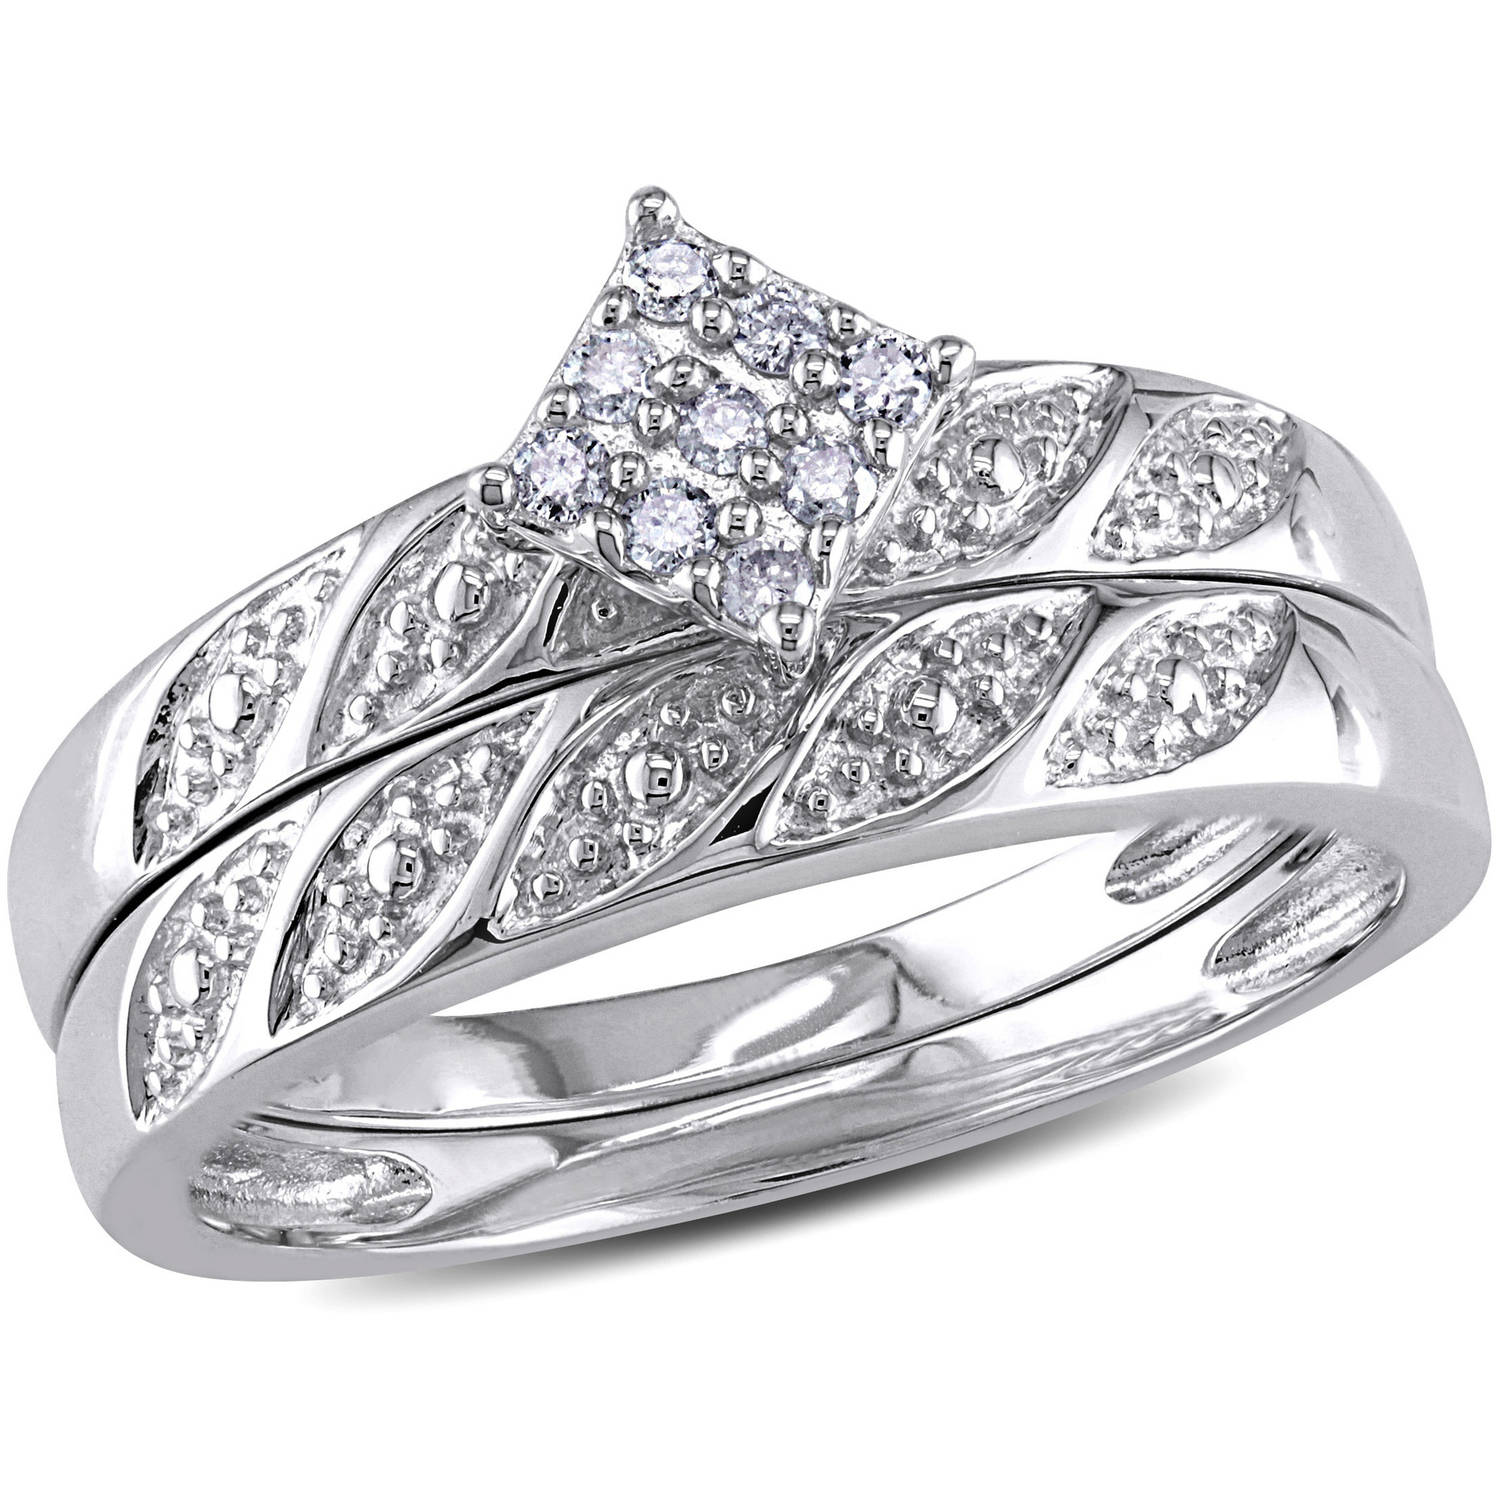 Miabella Diamond Accent Sterling Silver Bridal Ring Set Walmart